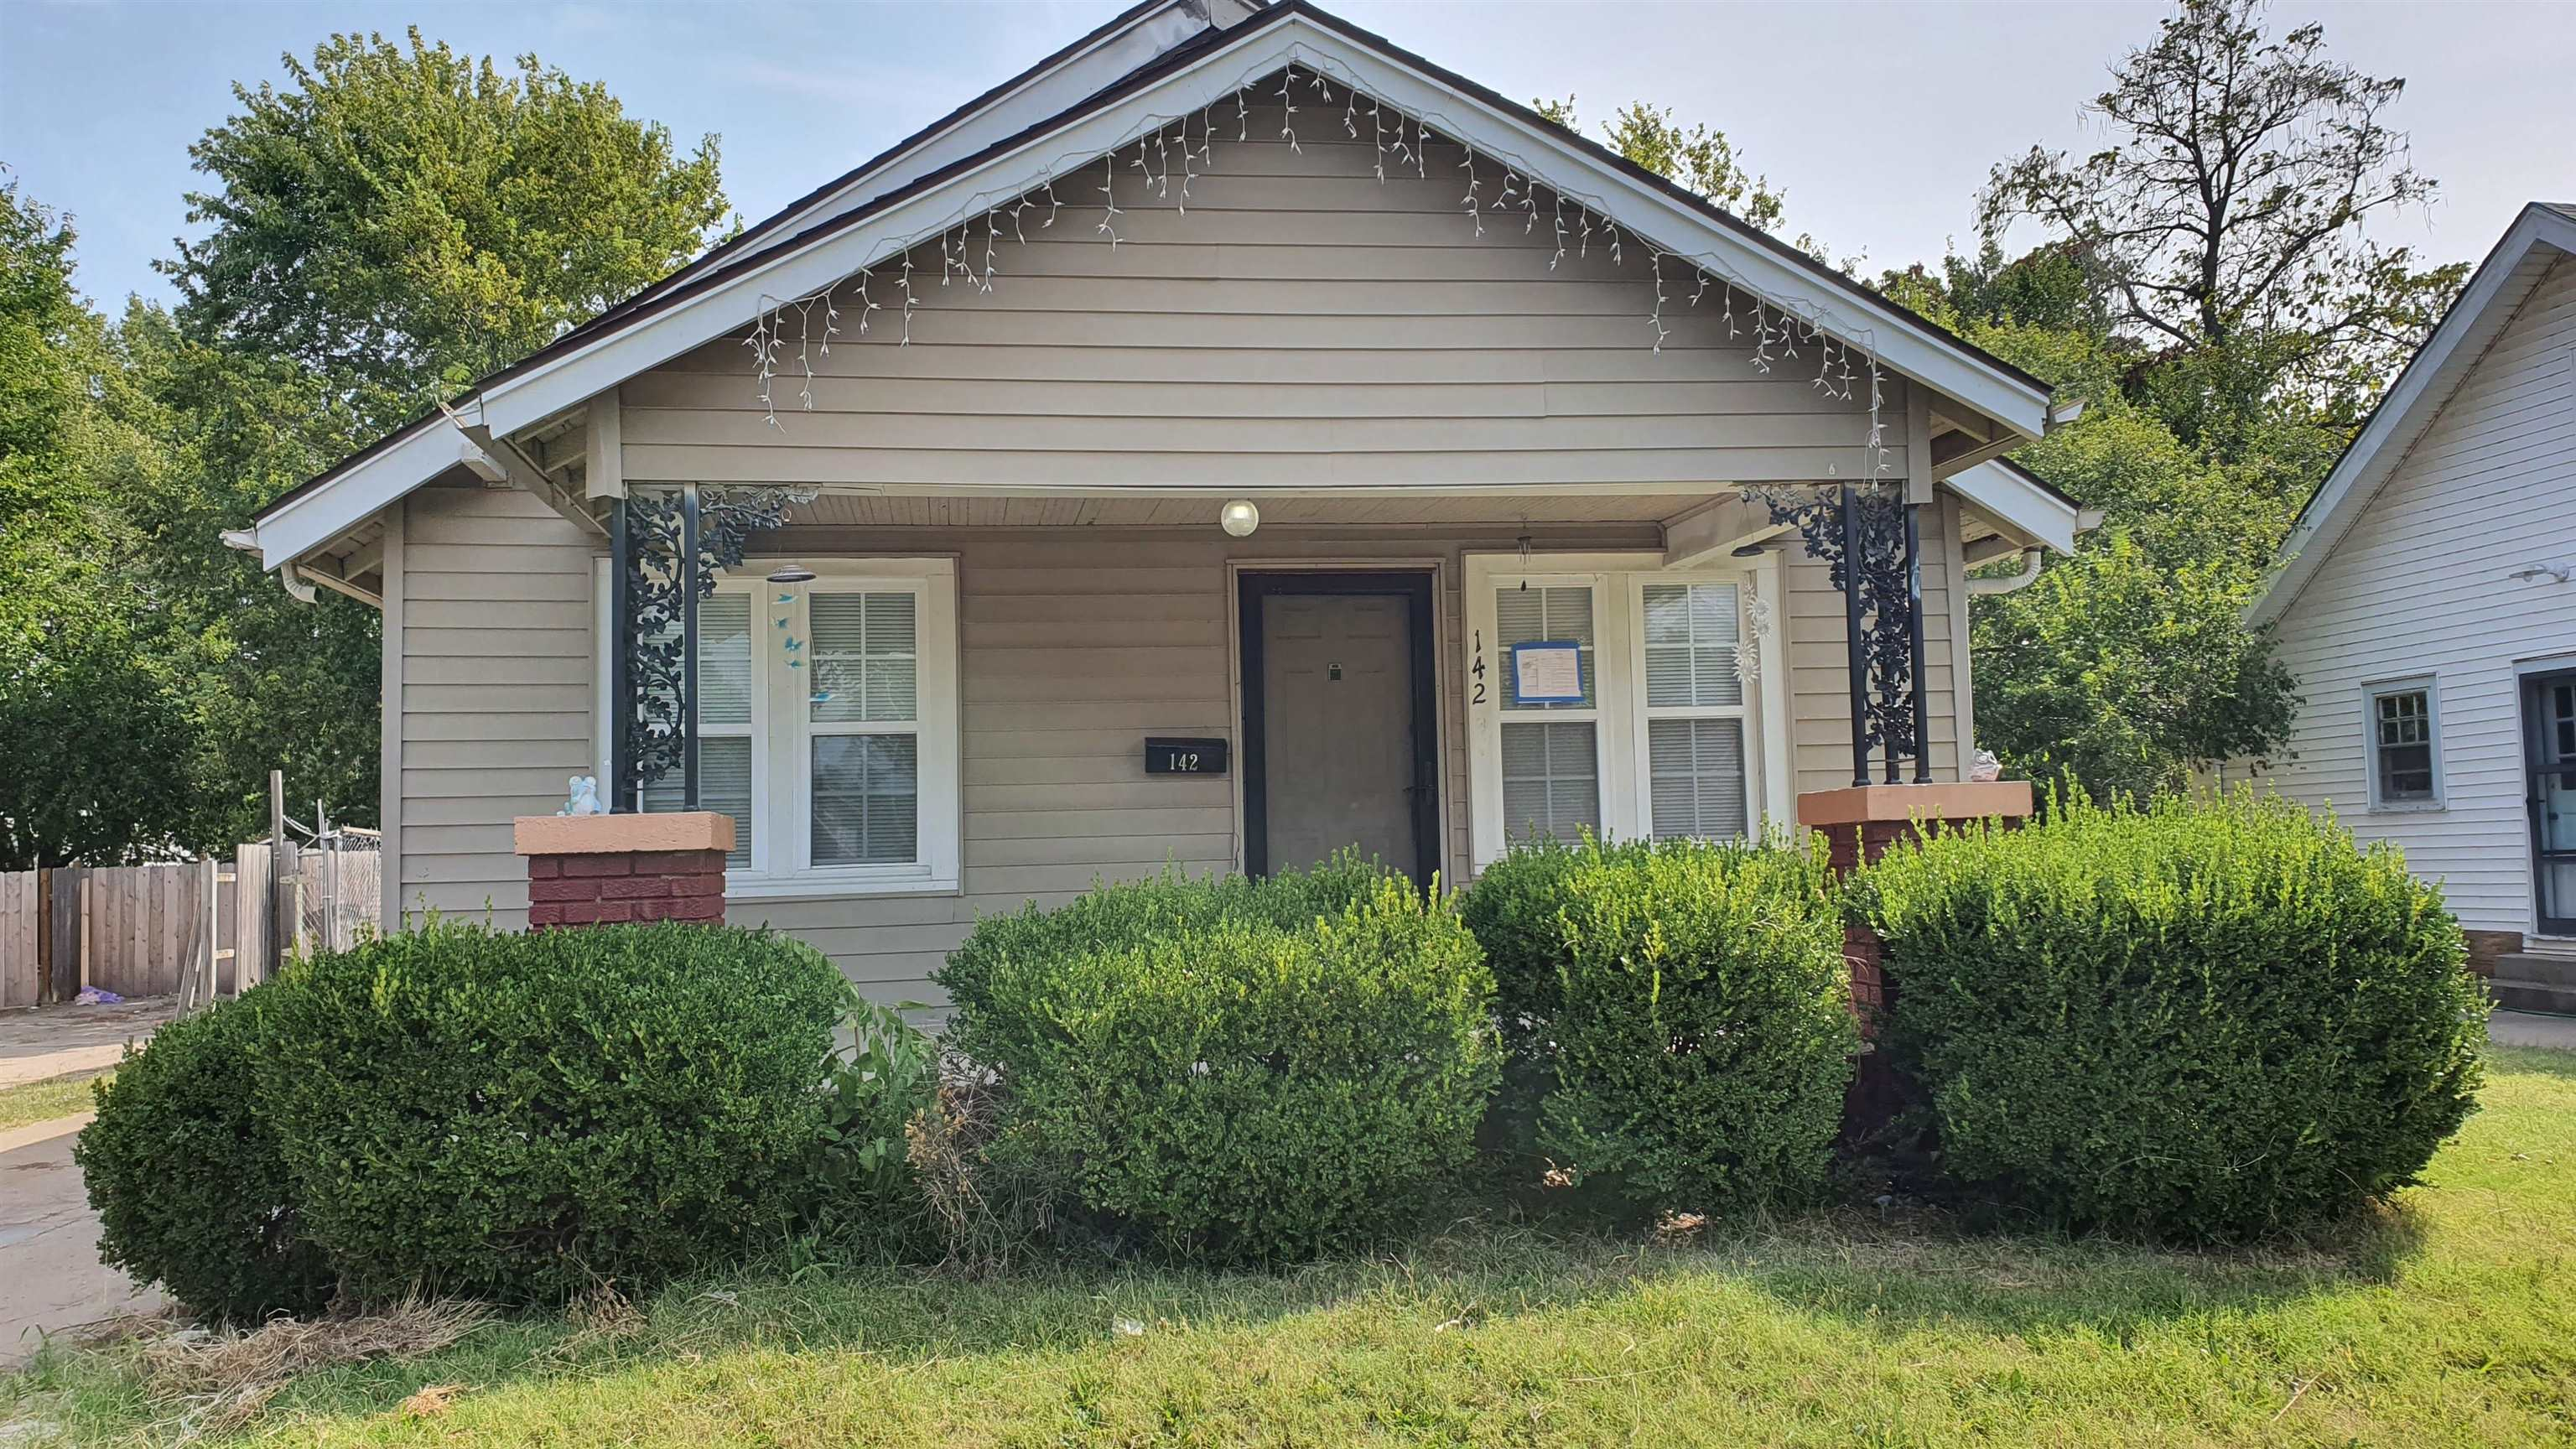 3 bedroom, 2 bath home with Over-Sized garage/SHOP big enough for an RV!! This home has a large Mast